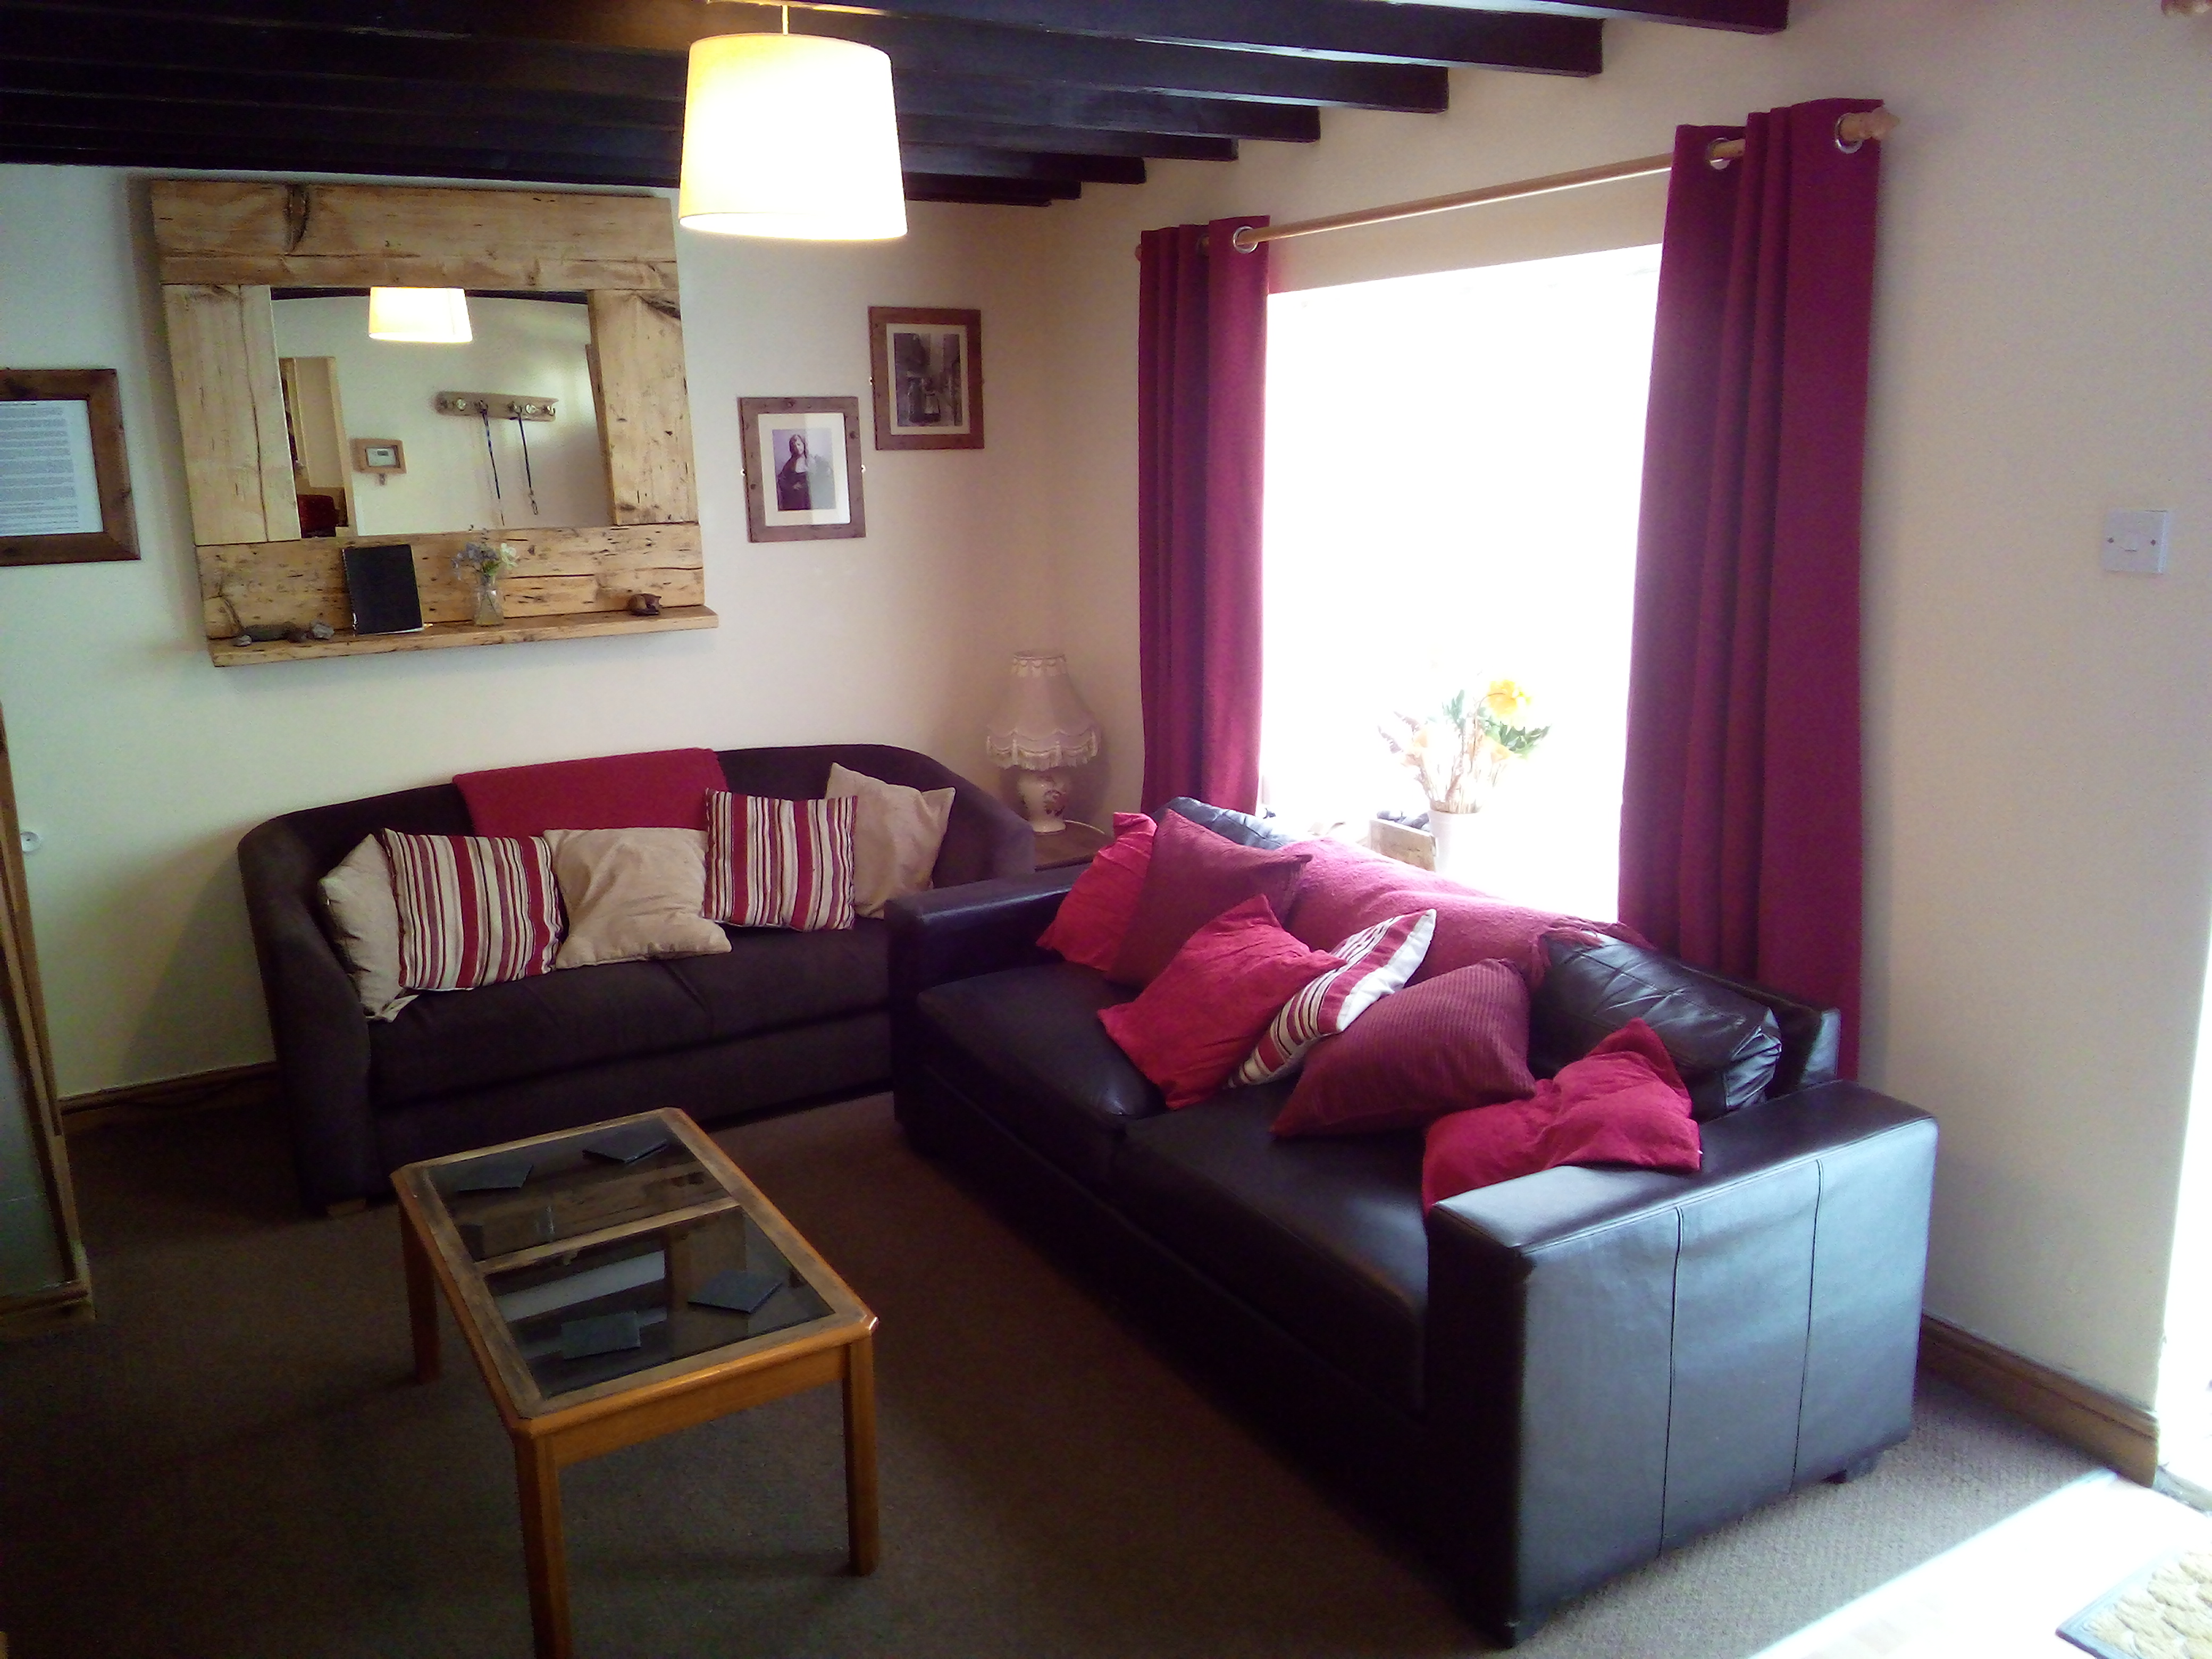 Brilliant Self Catering Holiday Cottage Accommodation In Whitby Home Interior And Landscaping Oversignezvosmurscom